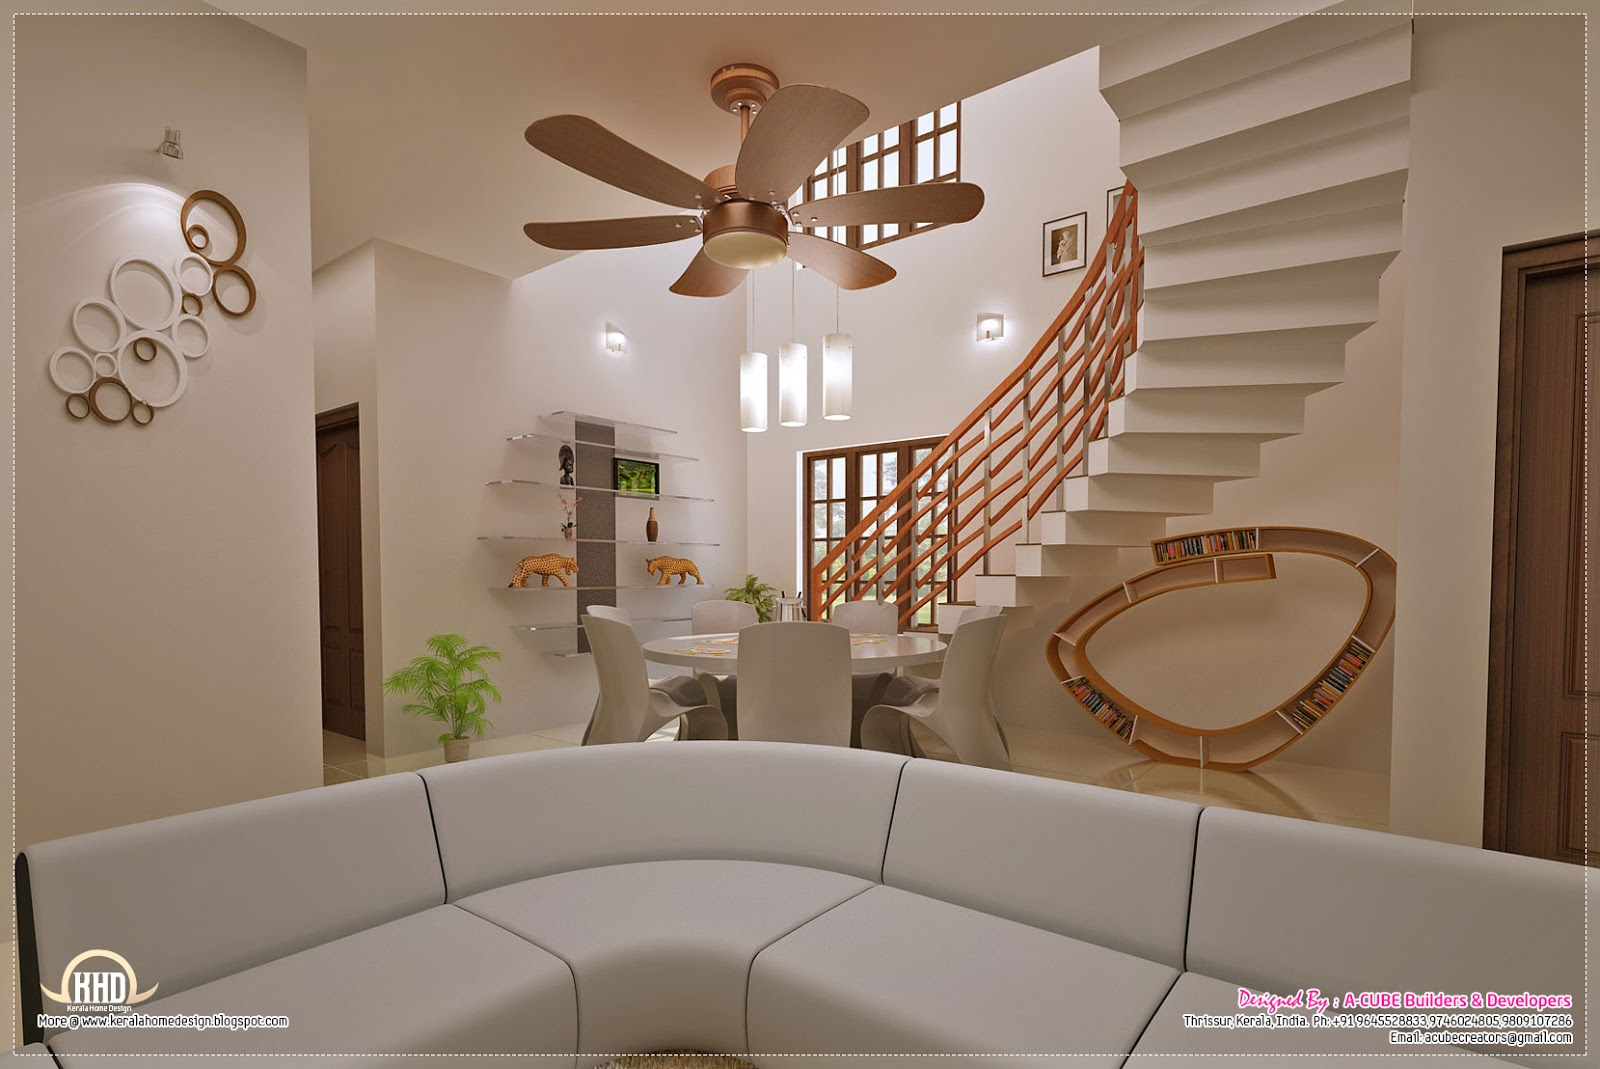 Awesome interior decoration ideas kerala home design and for Beautiful small house interiors